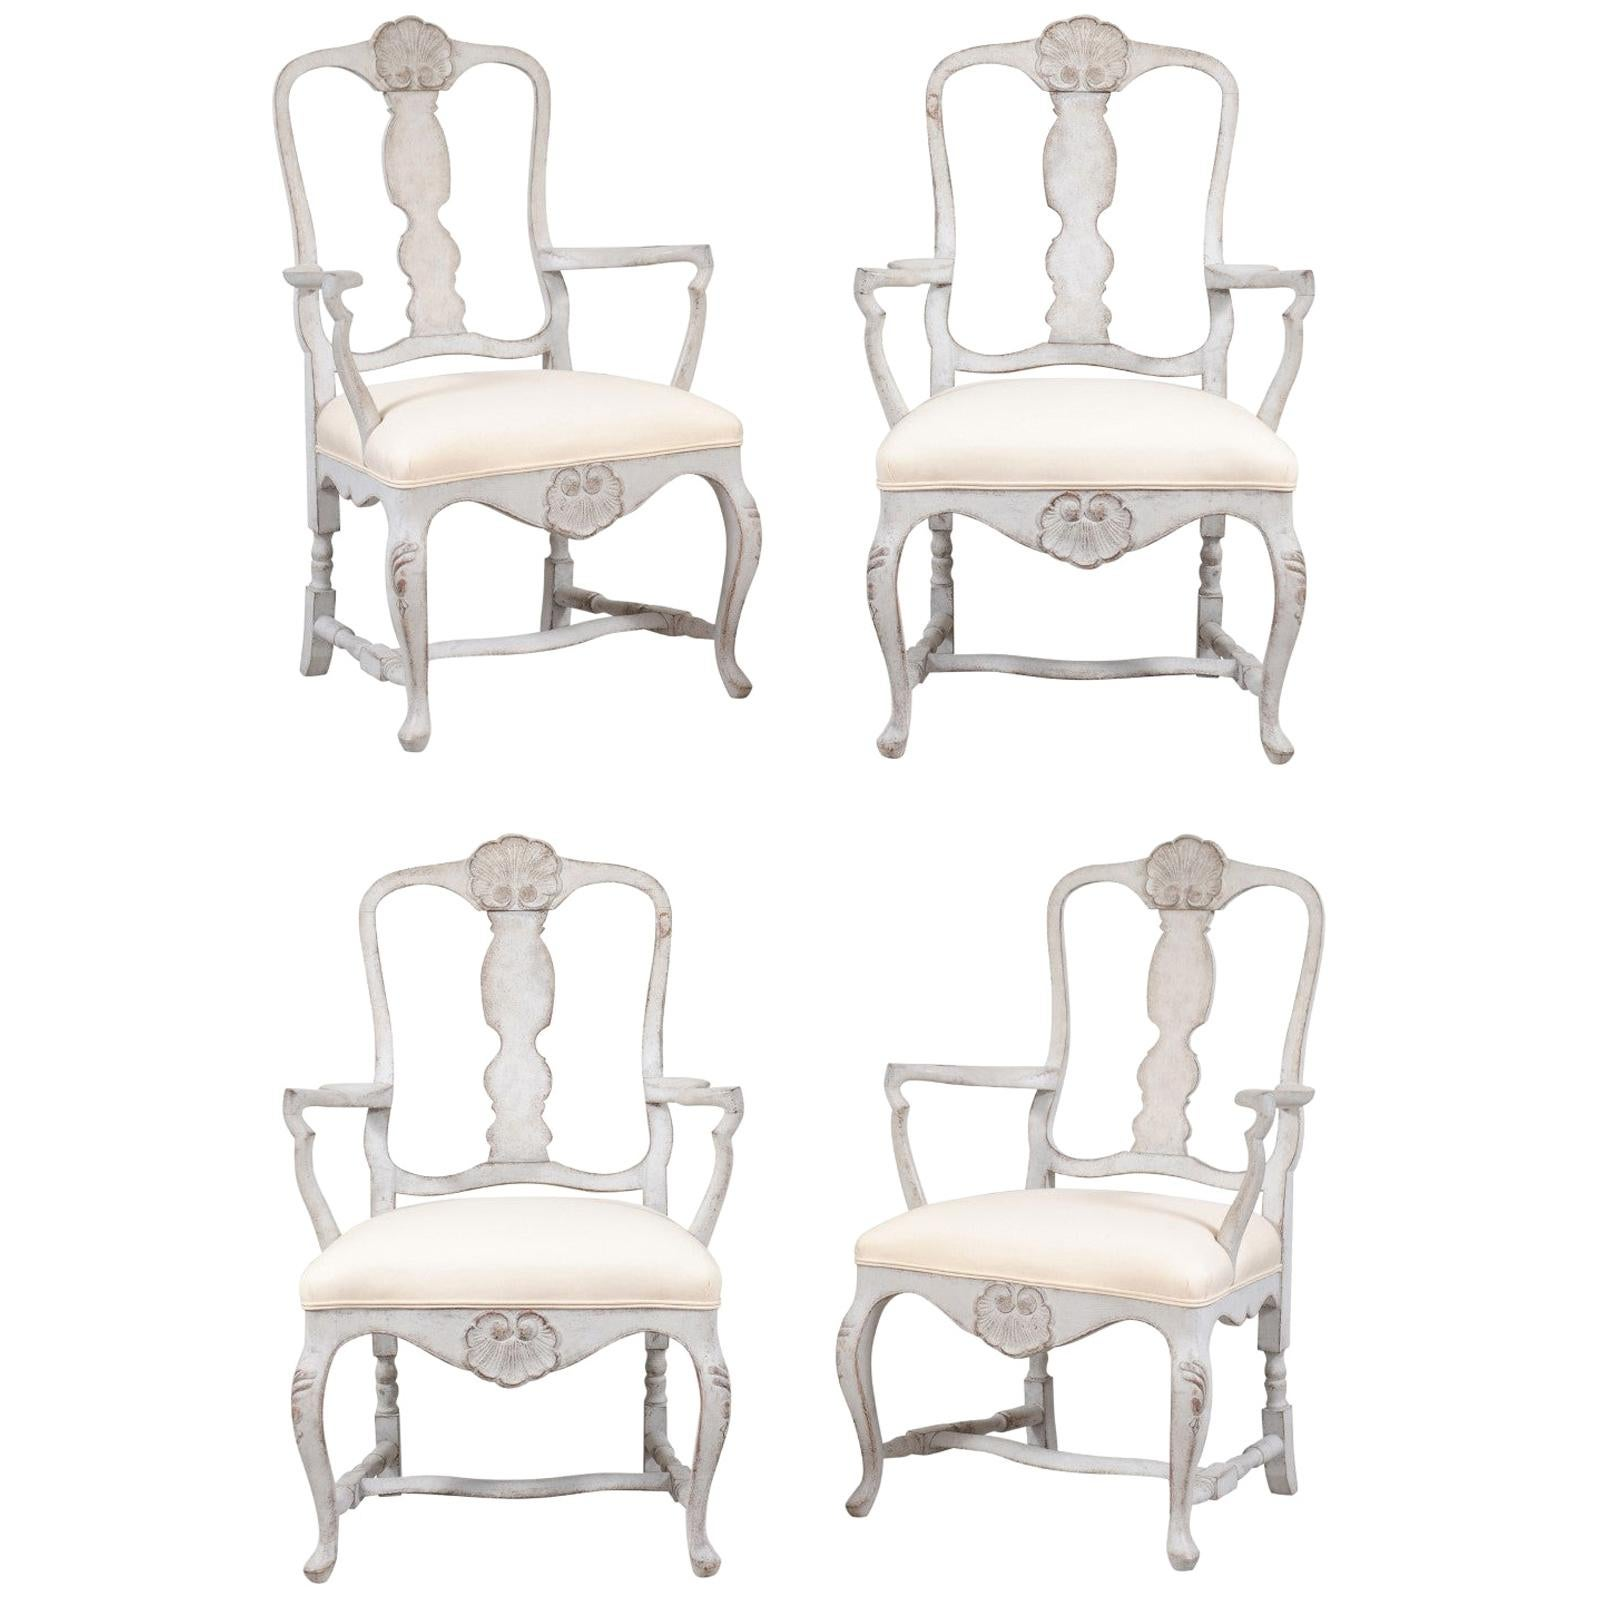 Two Pairs of Scandinavian Rococo Style Painted Armchairs with New Upholstery